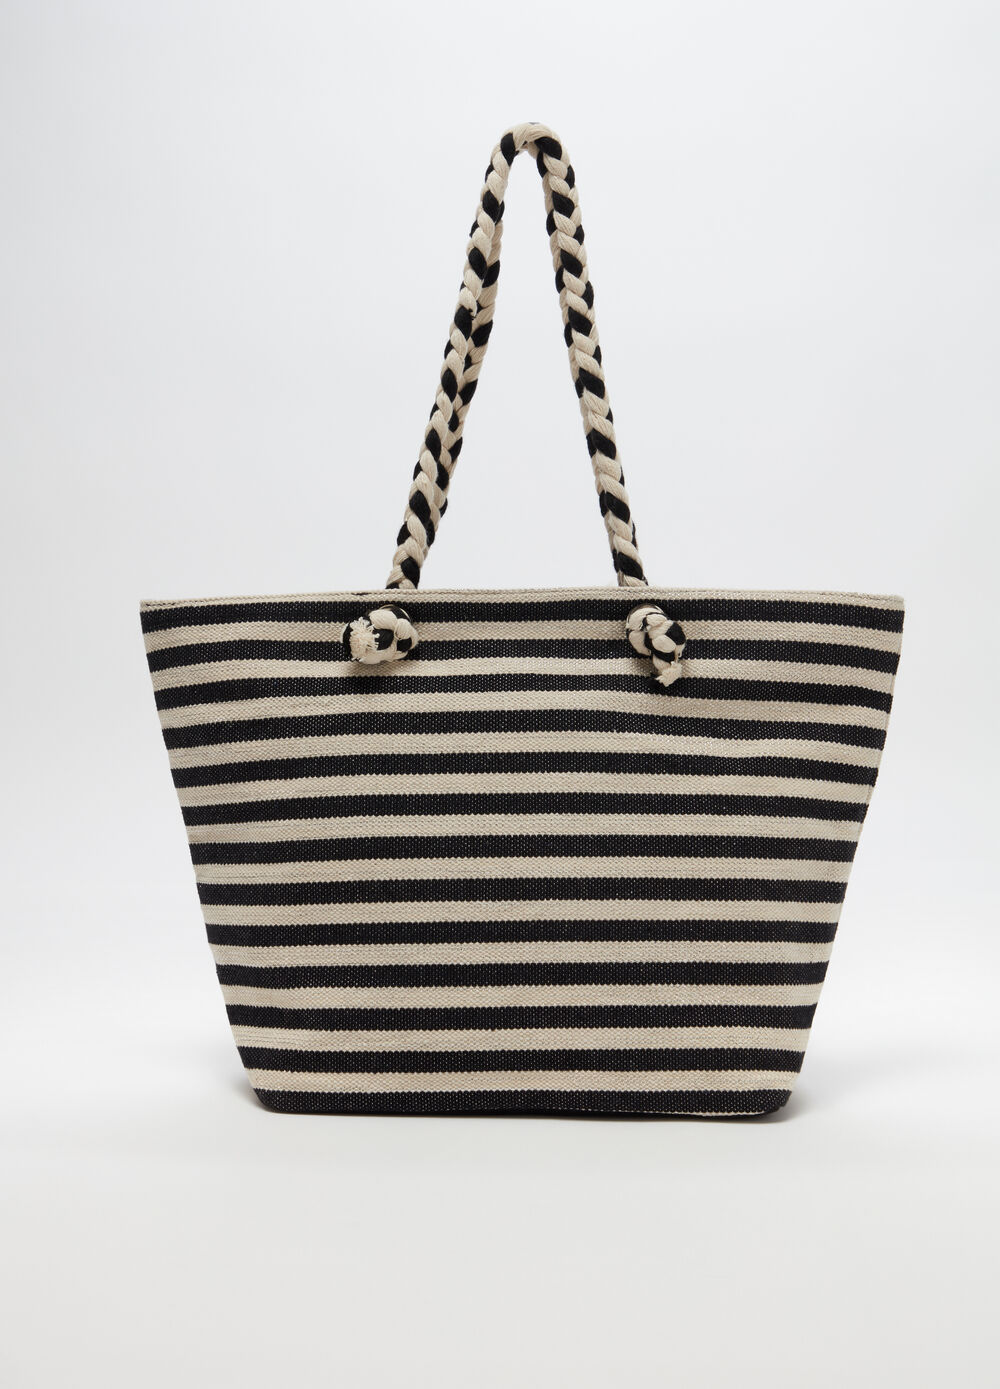 Beach bag with striped pattern